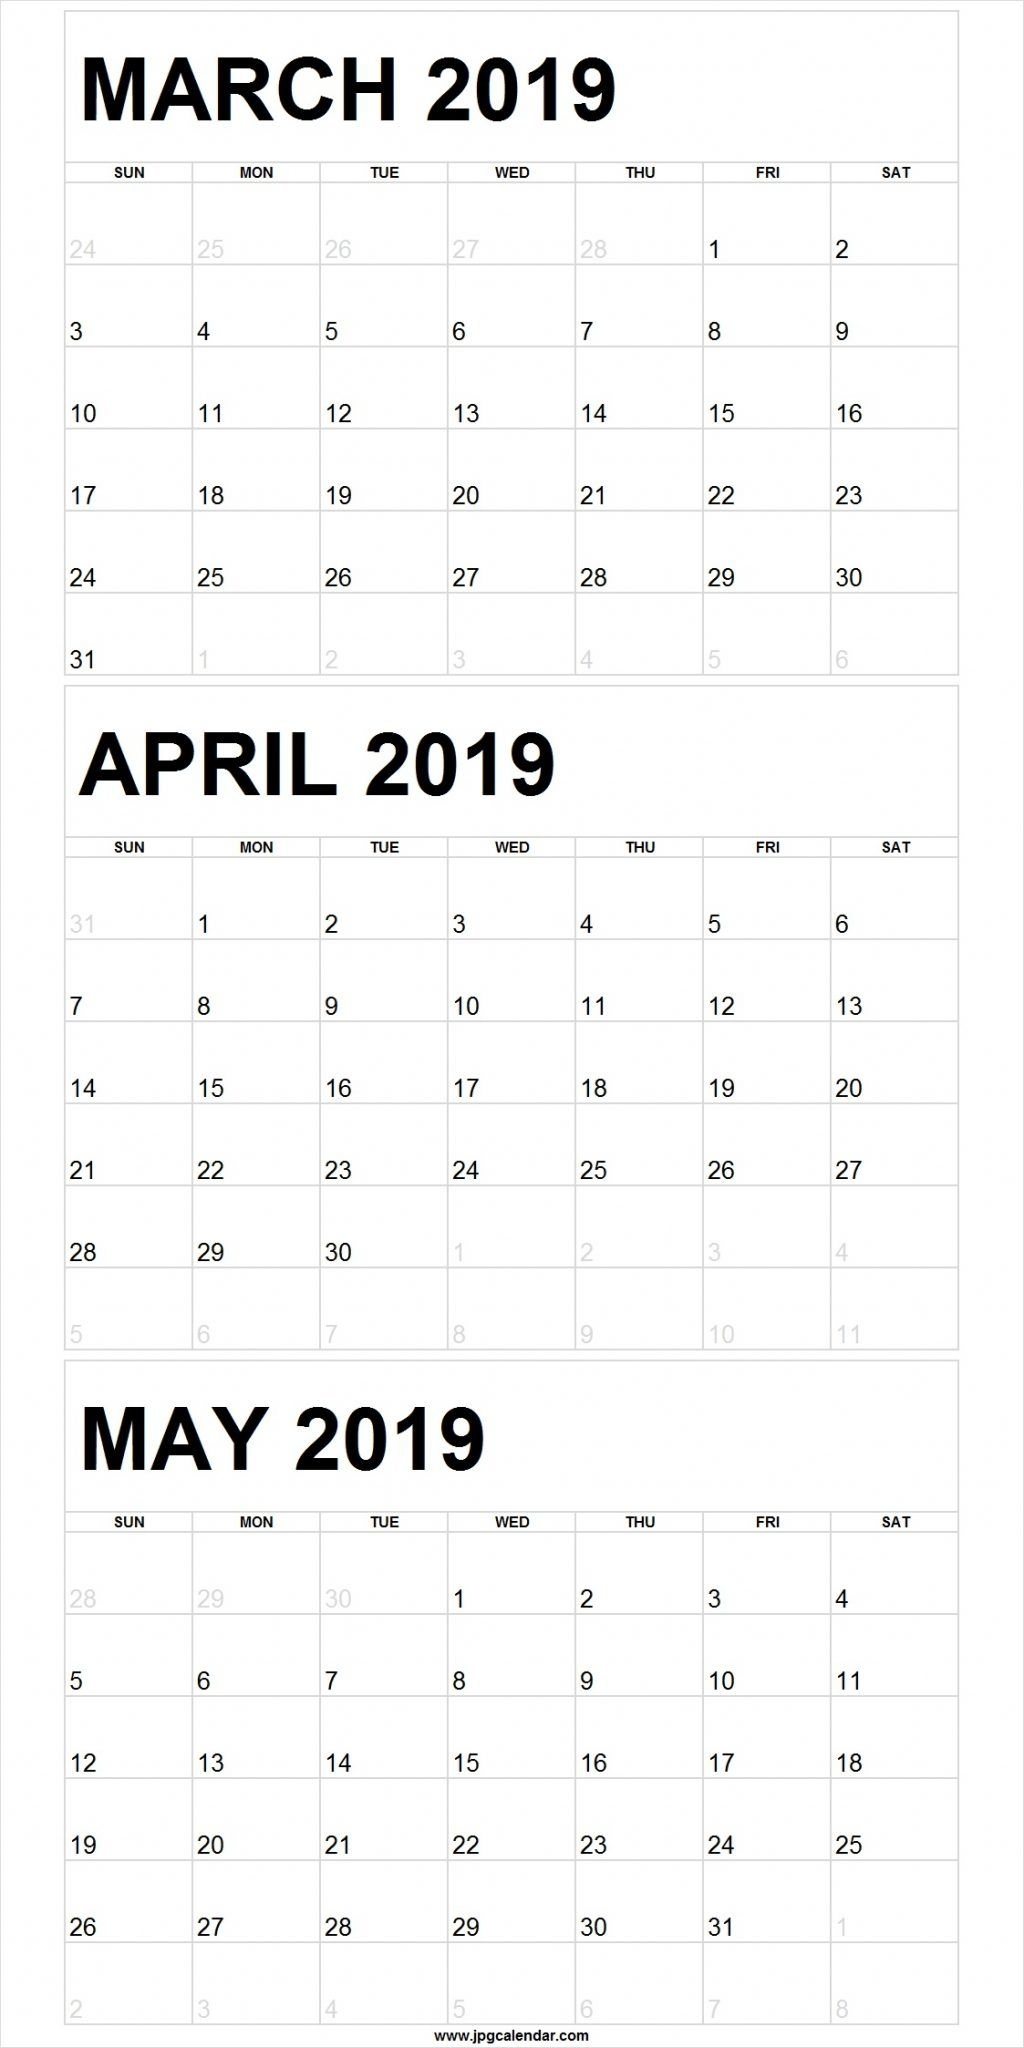 Blank March To May 2019 Calendar Printable | 250+ Free Monthly regarding Free 3 Month Calendars To Print